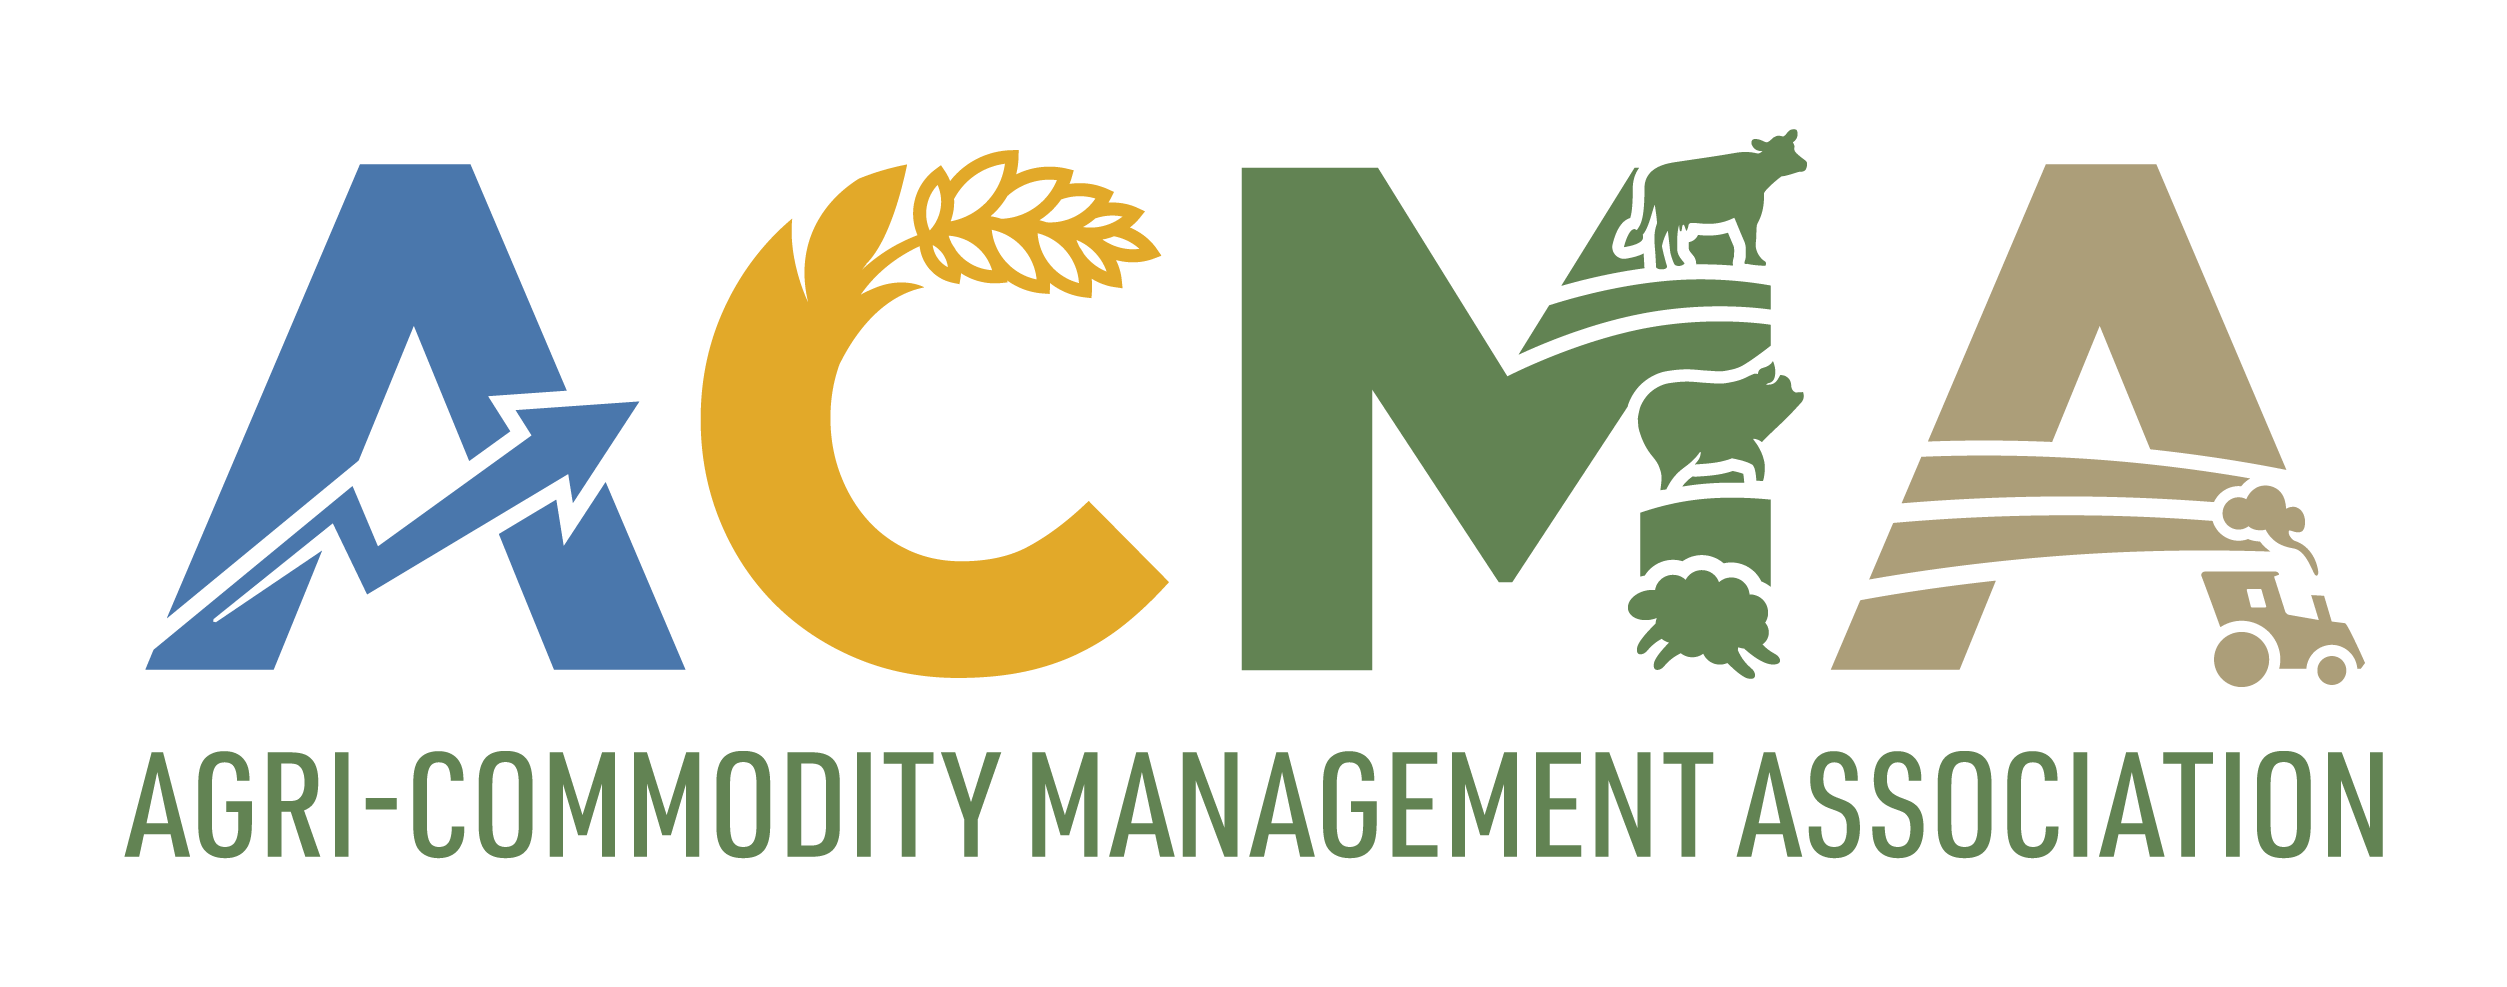 Agri-Commodity Management Association